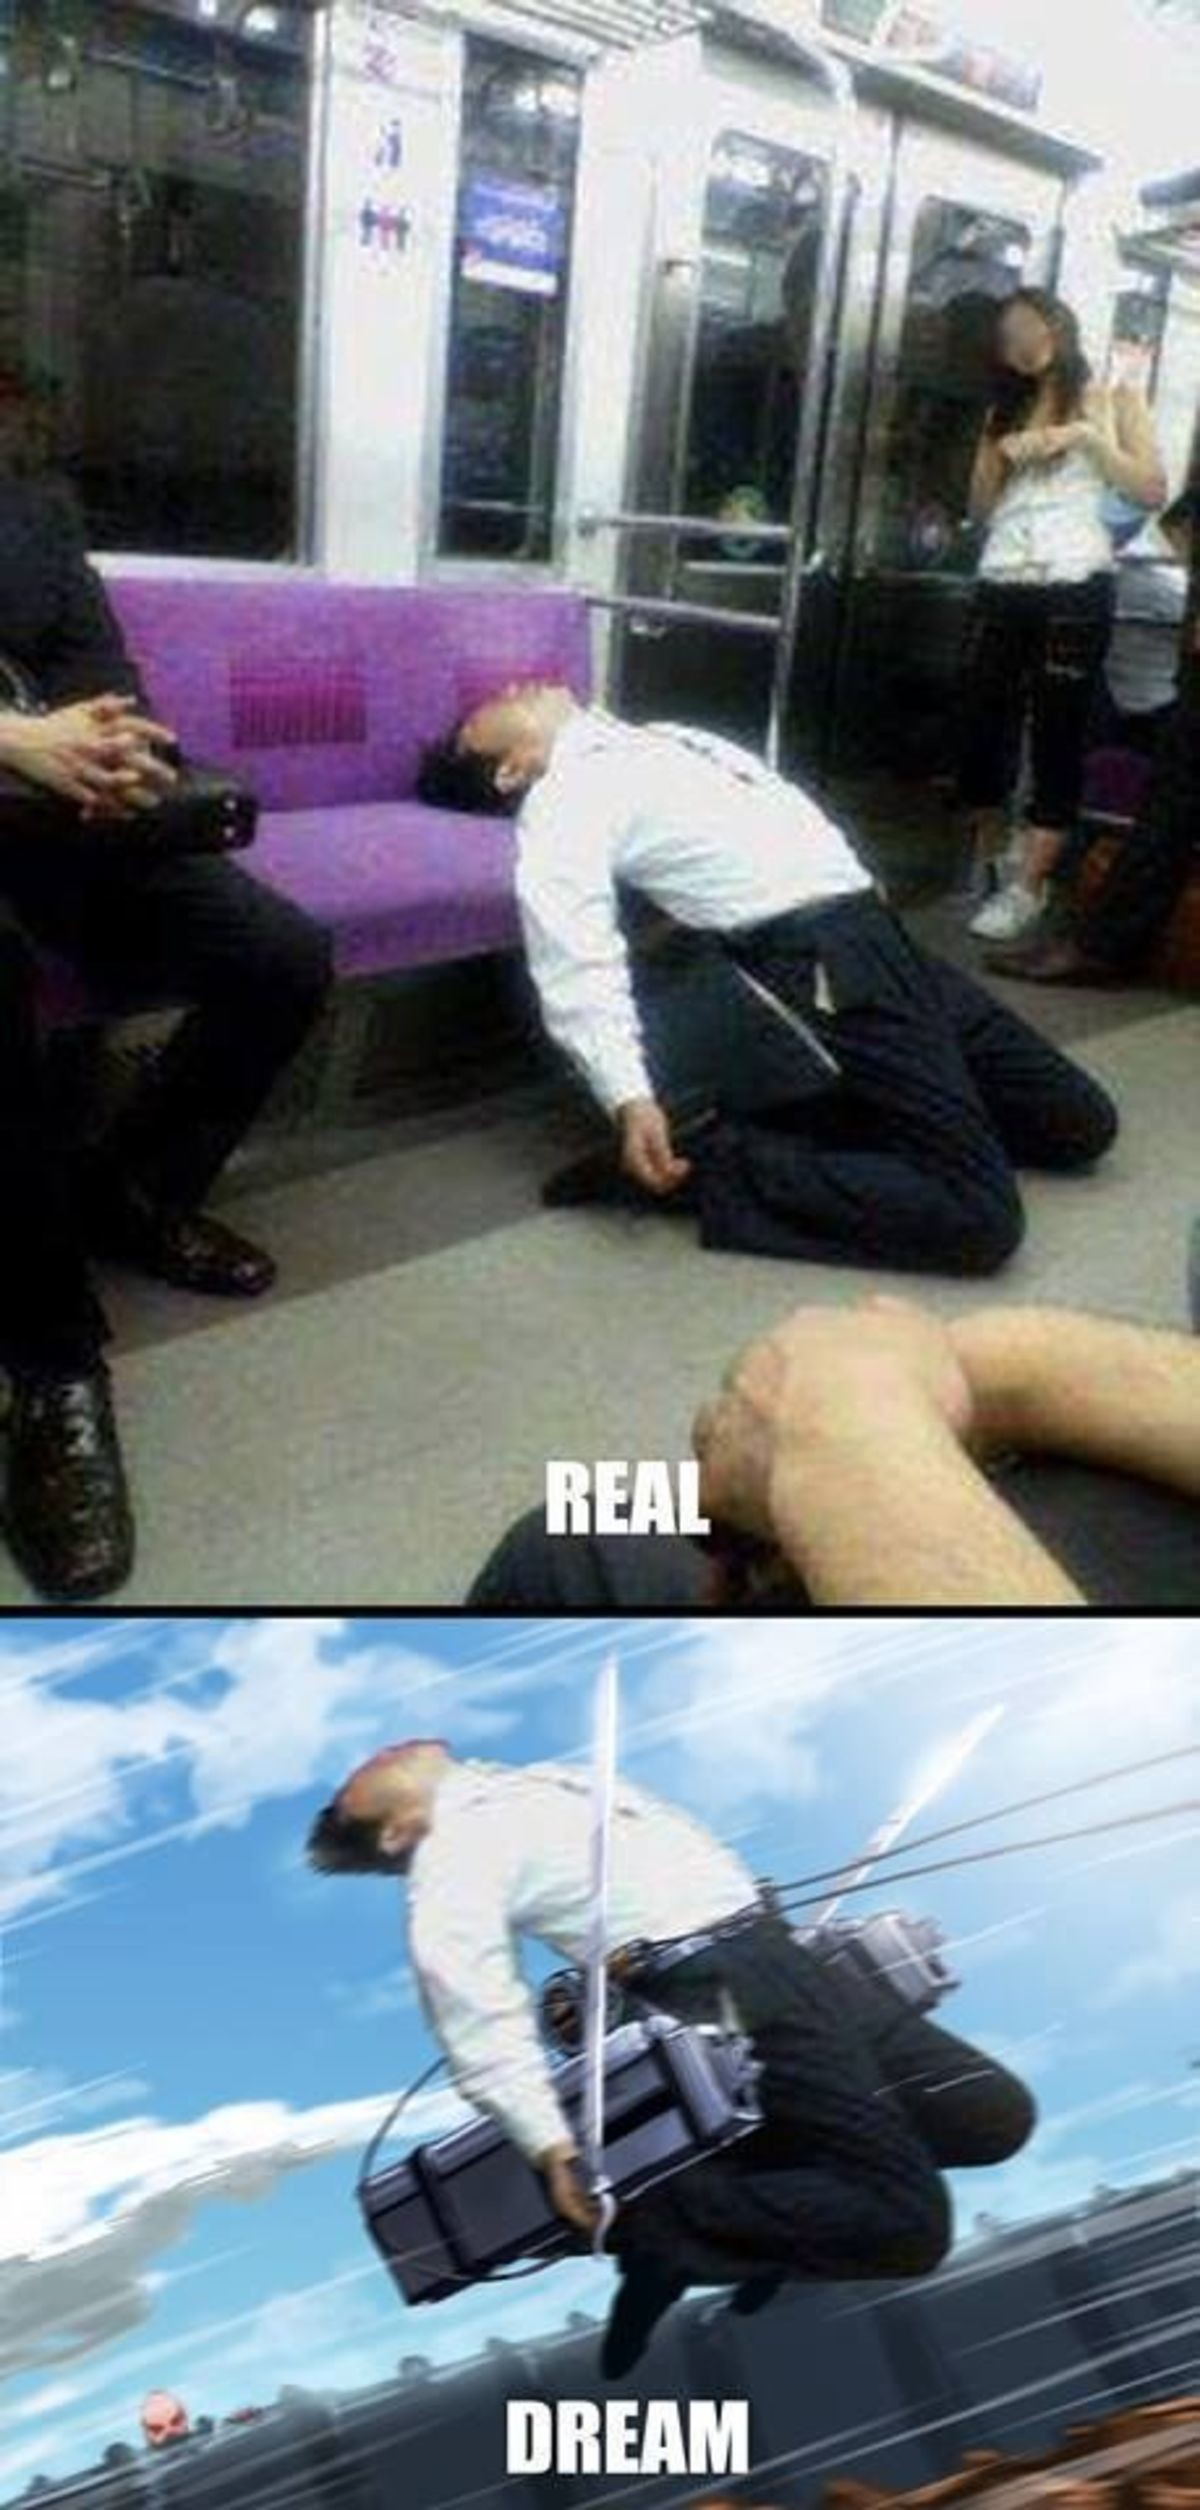 nostalgic accidental sincere Boar. .. Chinese local dabs on feminist haters by taking manspreading to a new level of power